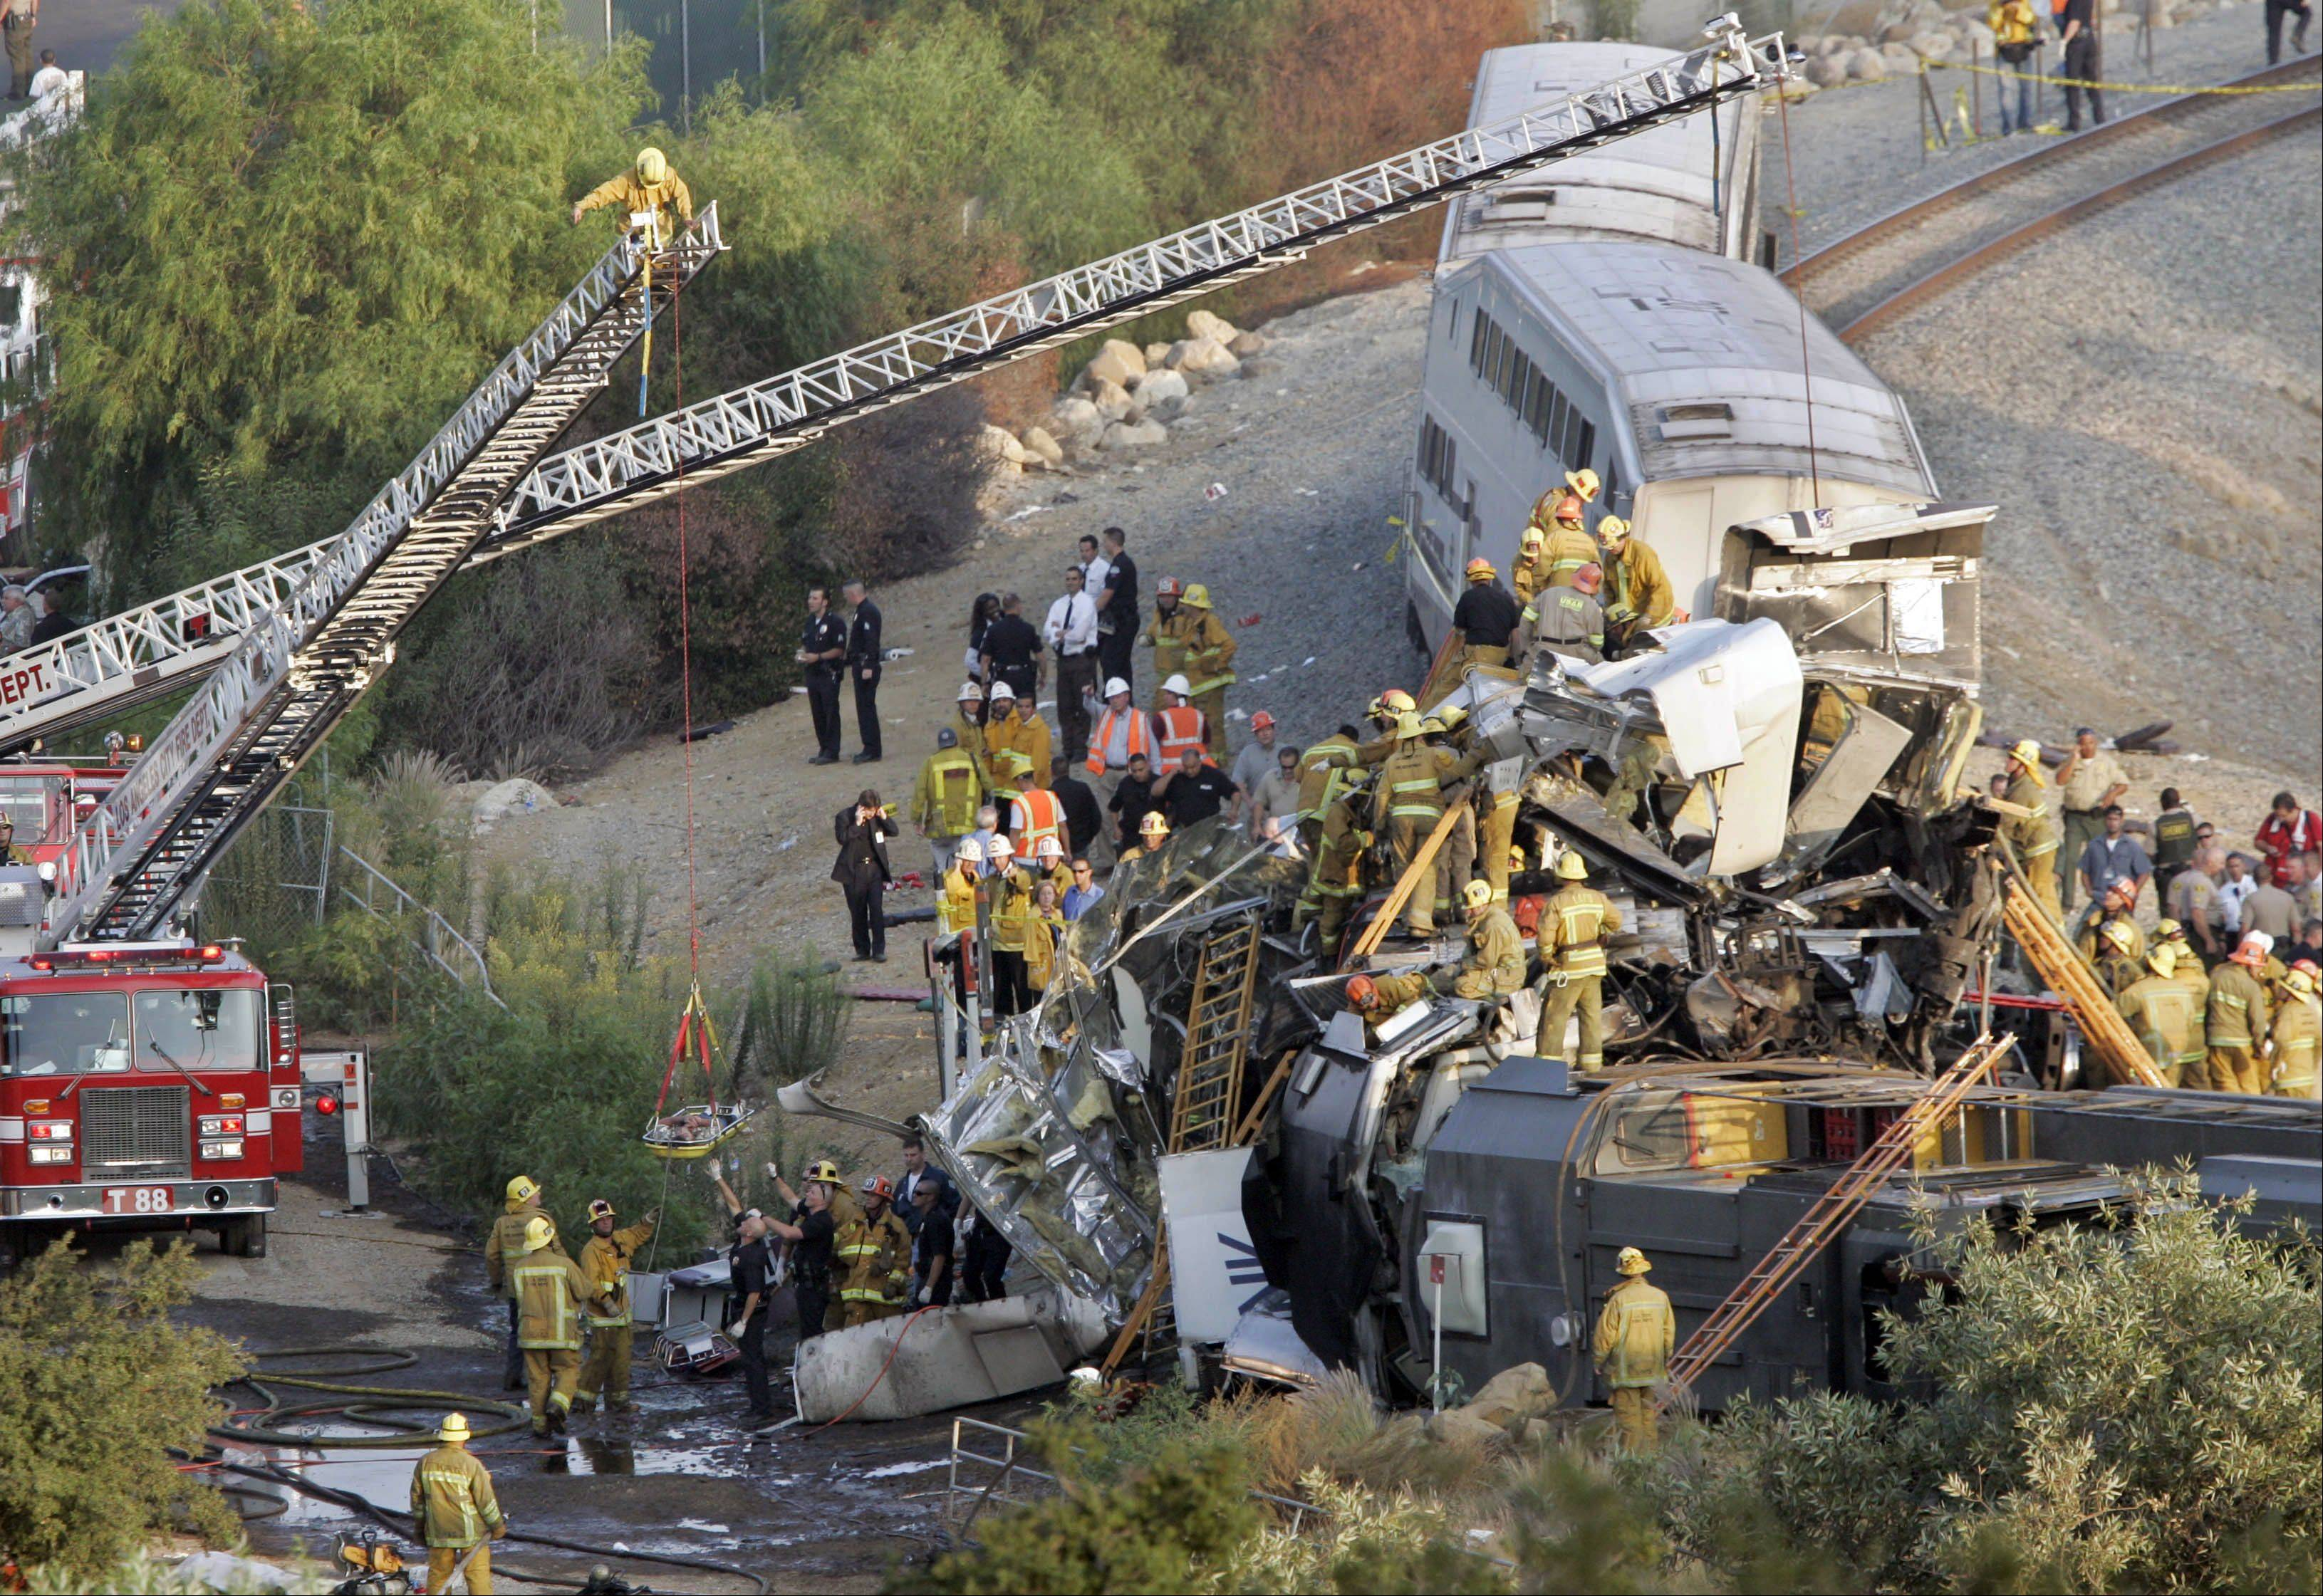 The horrific crash between a commuter train and a freight train in Los Angeles in 2008 caused lawmakers to require Positive Train Control systems nationwide.